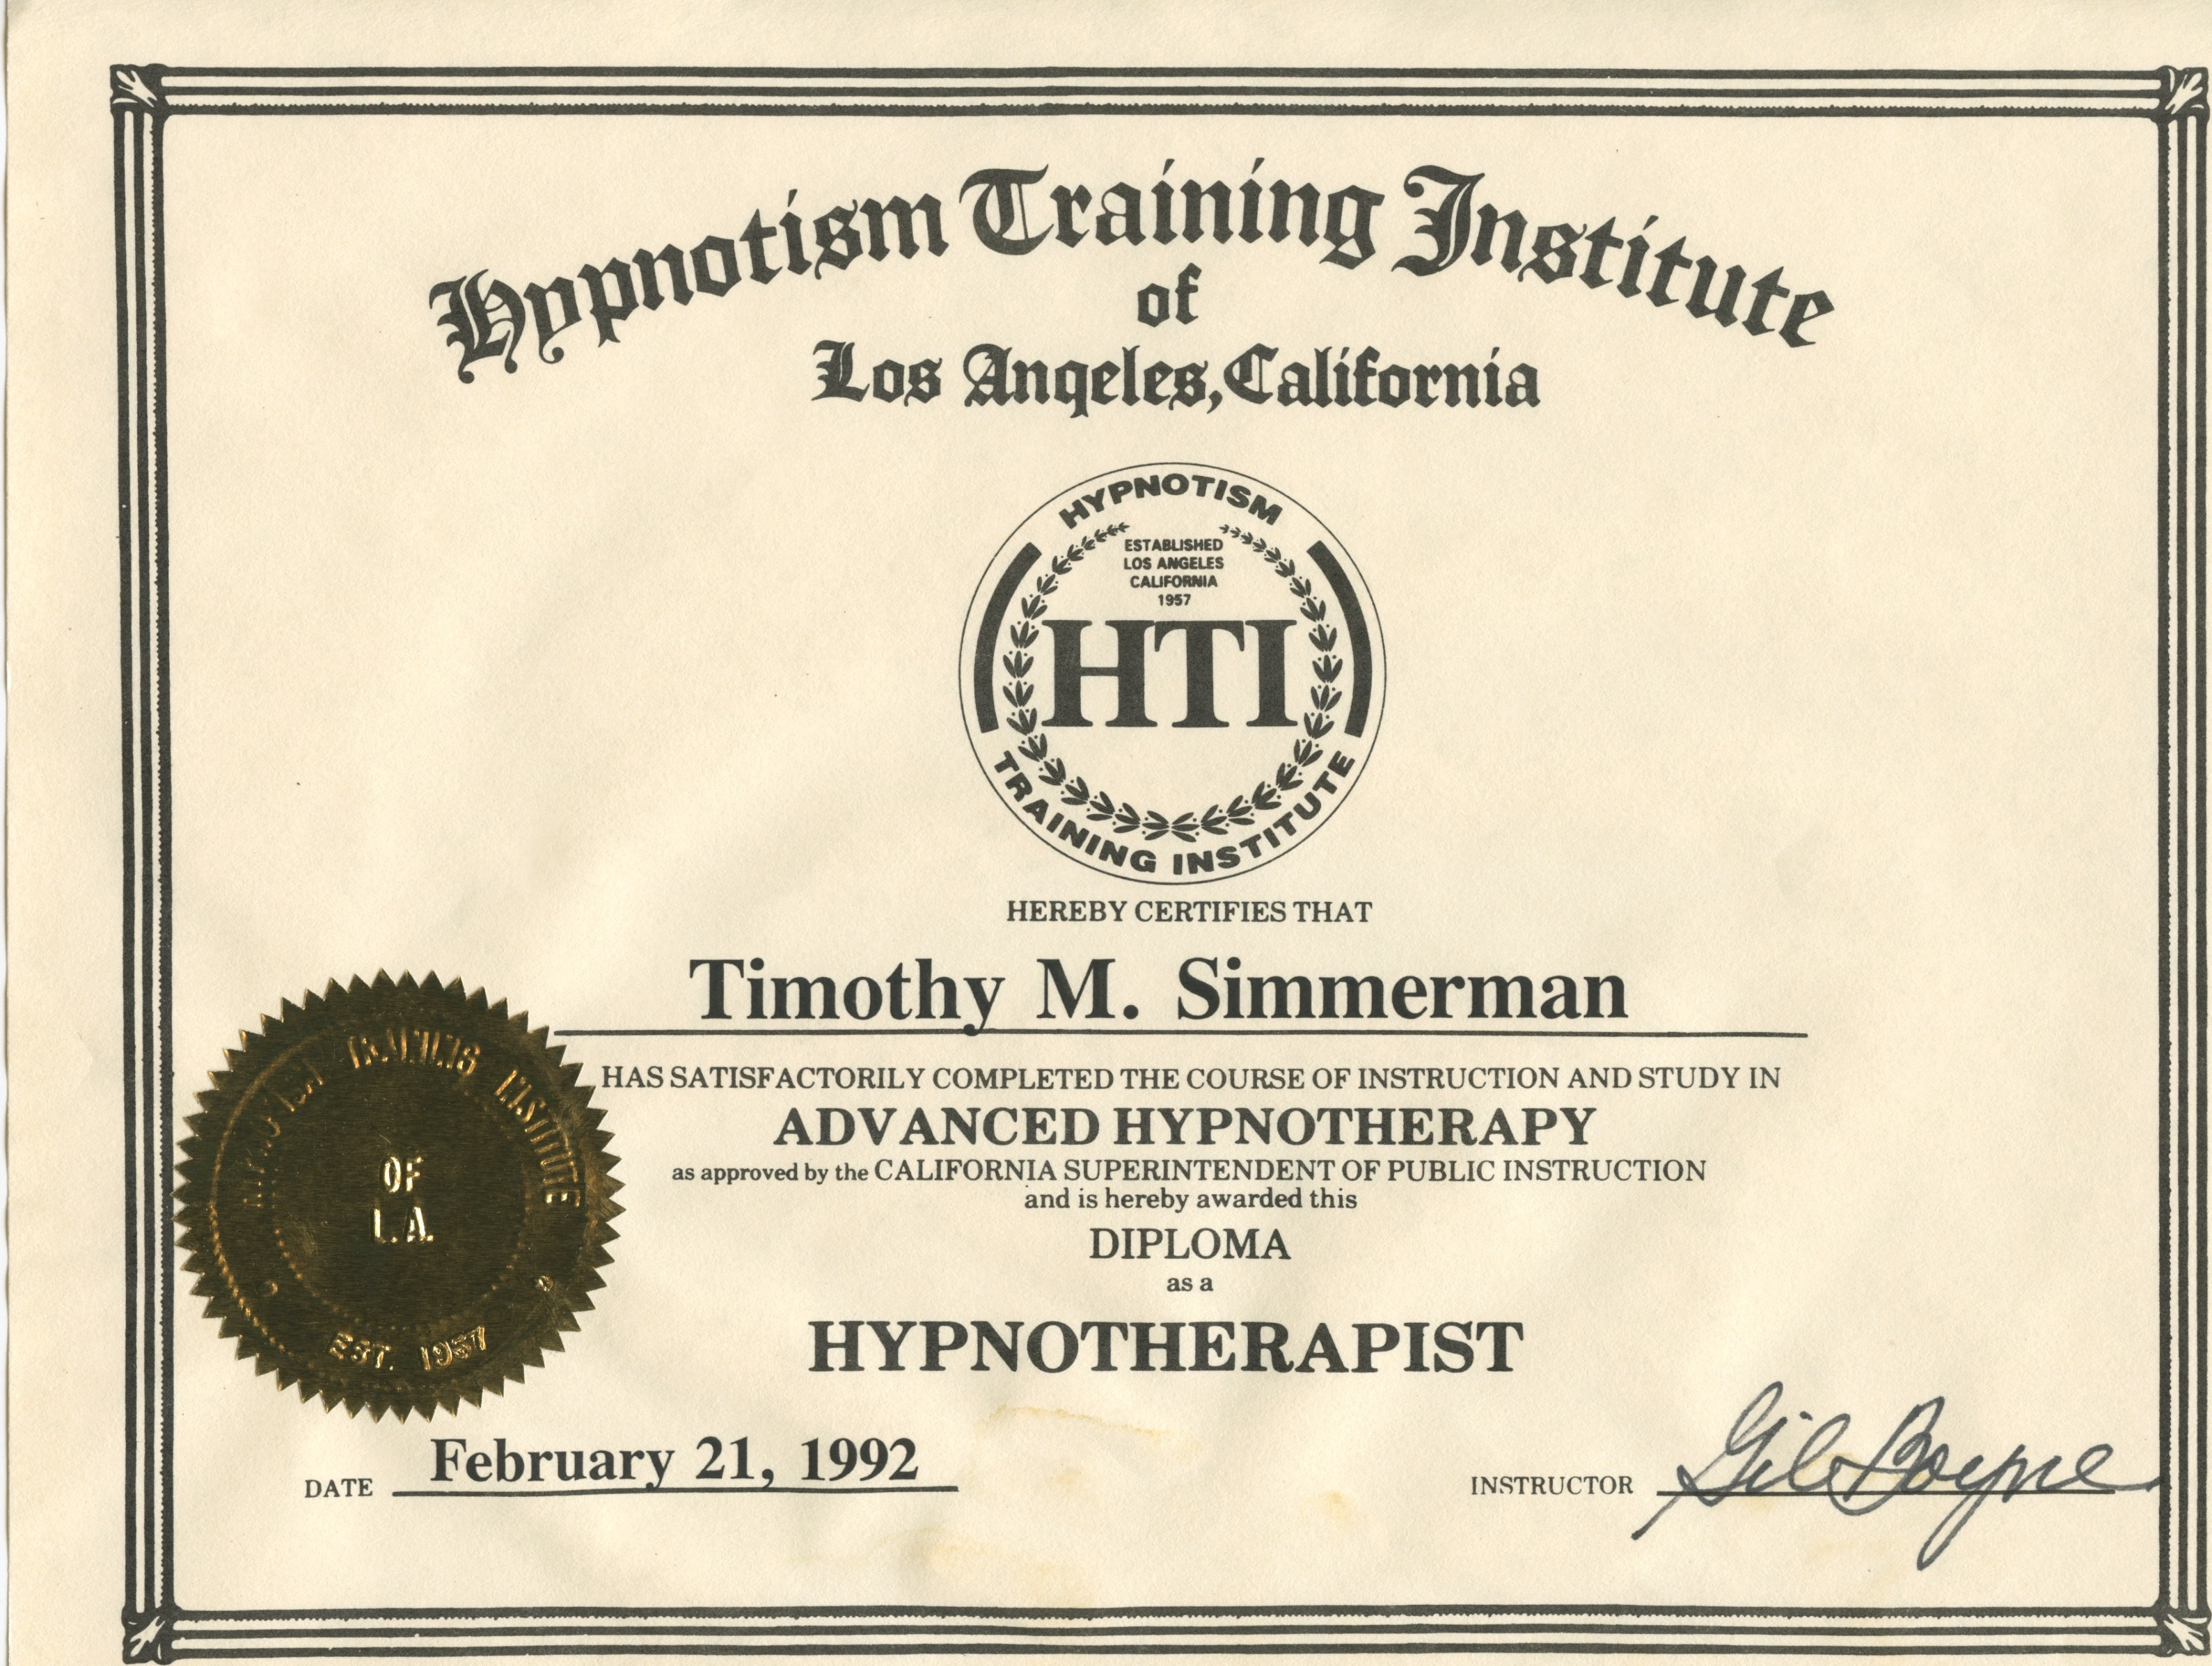 Gil Boynes Certificate Acknowledging Tims 1992 Hypnotherapy Training